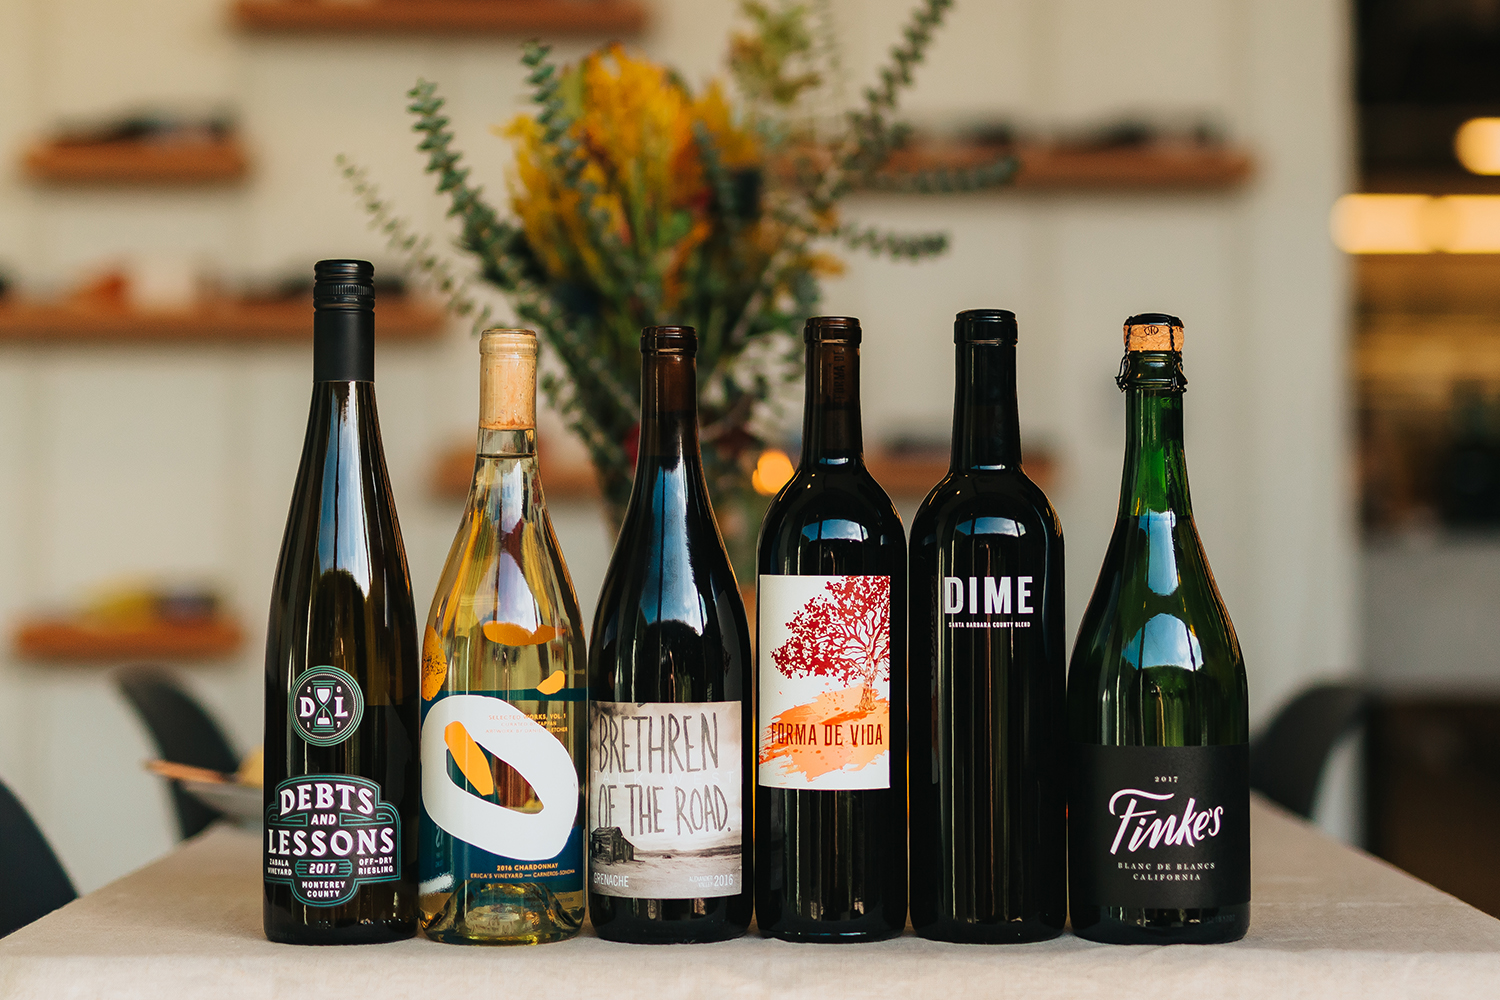 6 Wines to Complete Your Holiday Meal